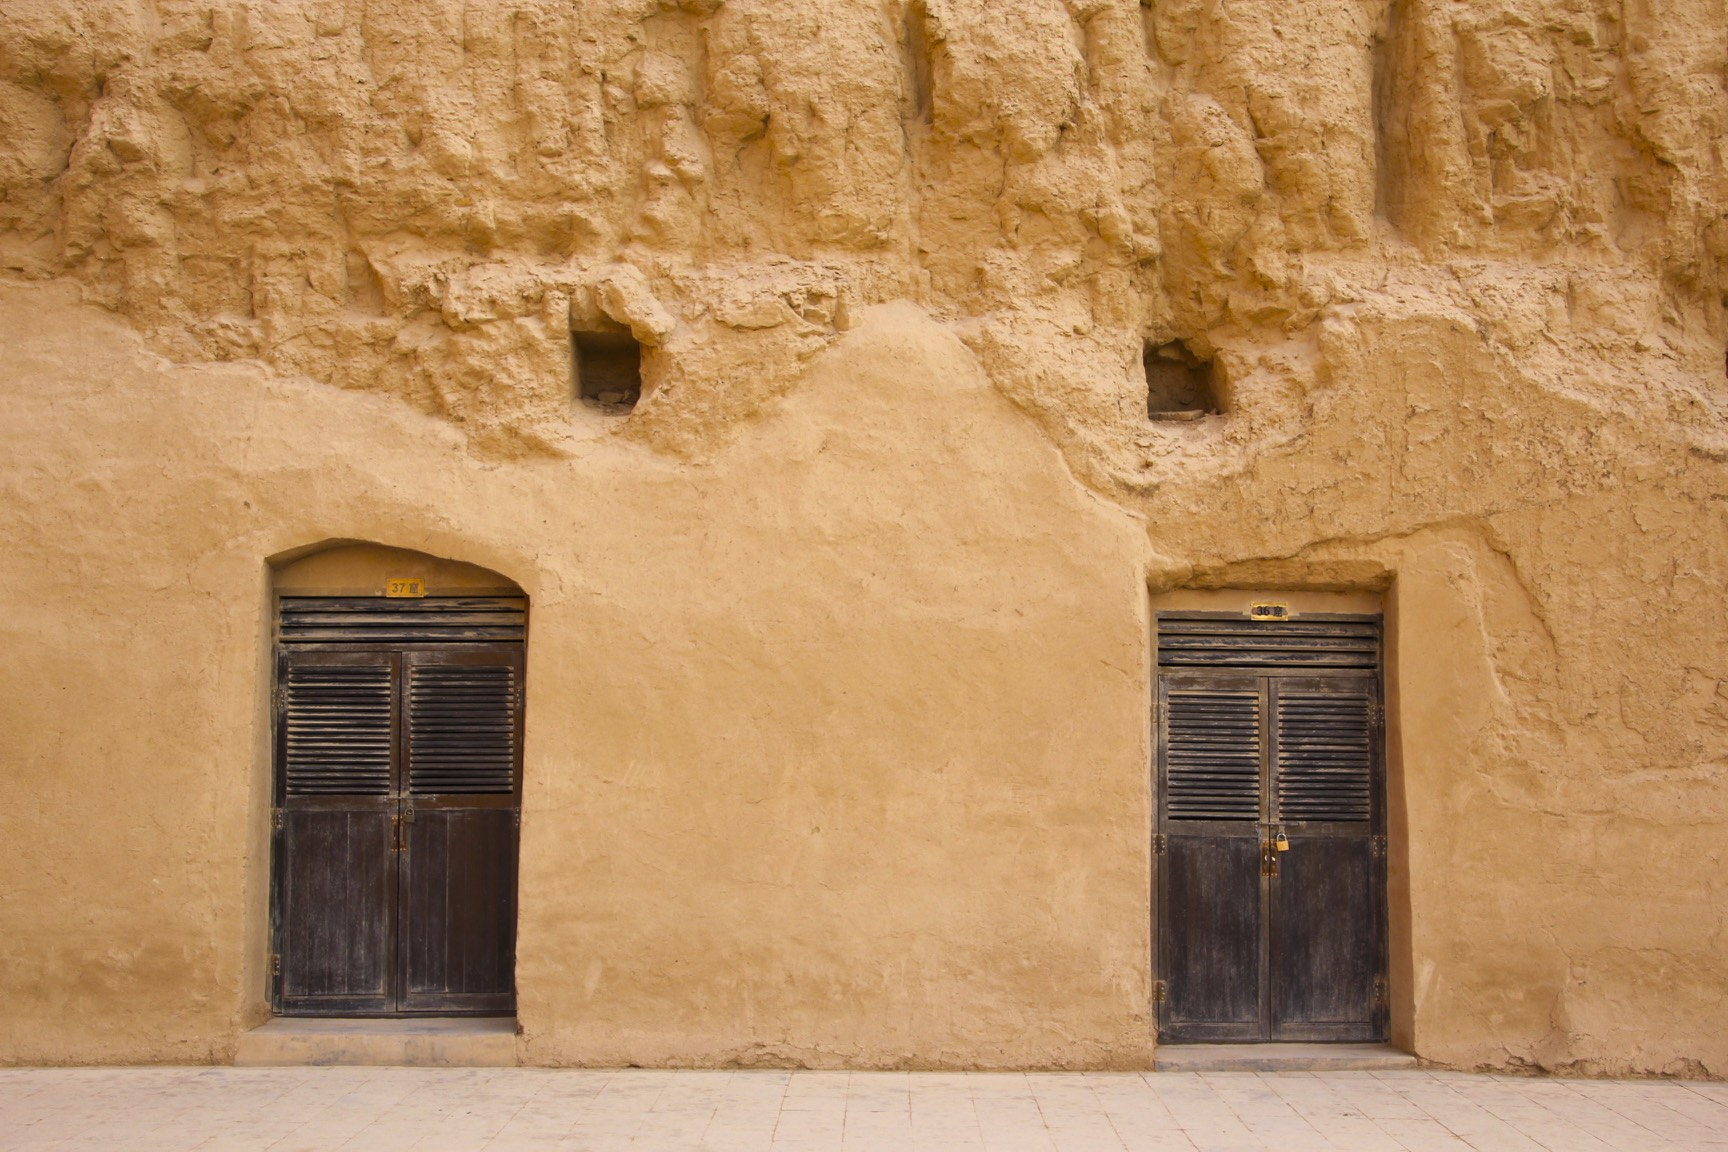 The Bezeklik Thousand Buddha Caves near Turpan.